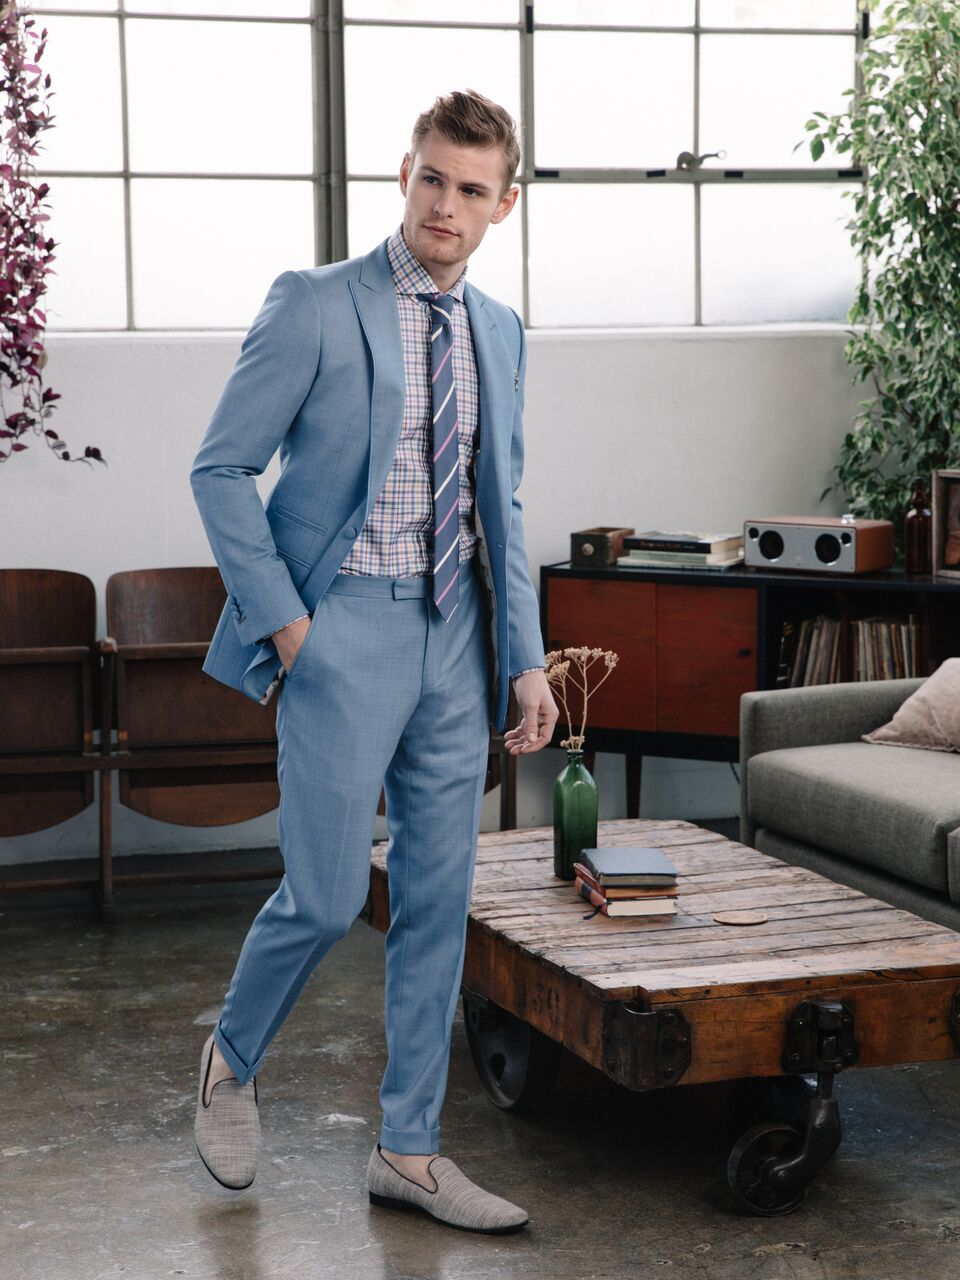 Model - Noah Teicher (LA Models)  Made to Measure Suit. Ready-to-Wear Necktie  Klein Epstein & Parker - San Francisco